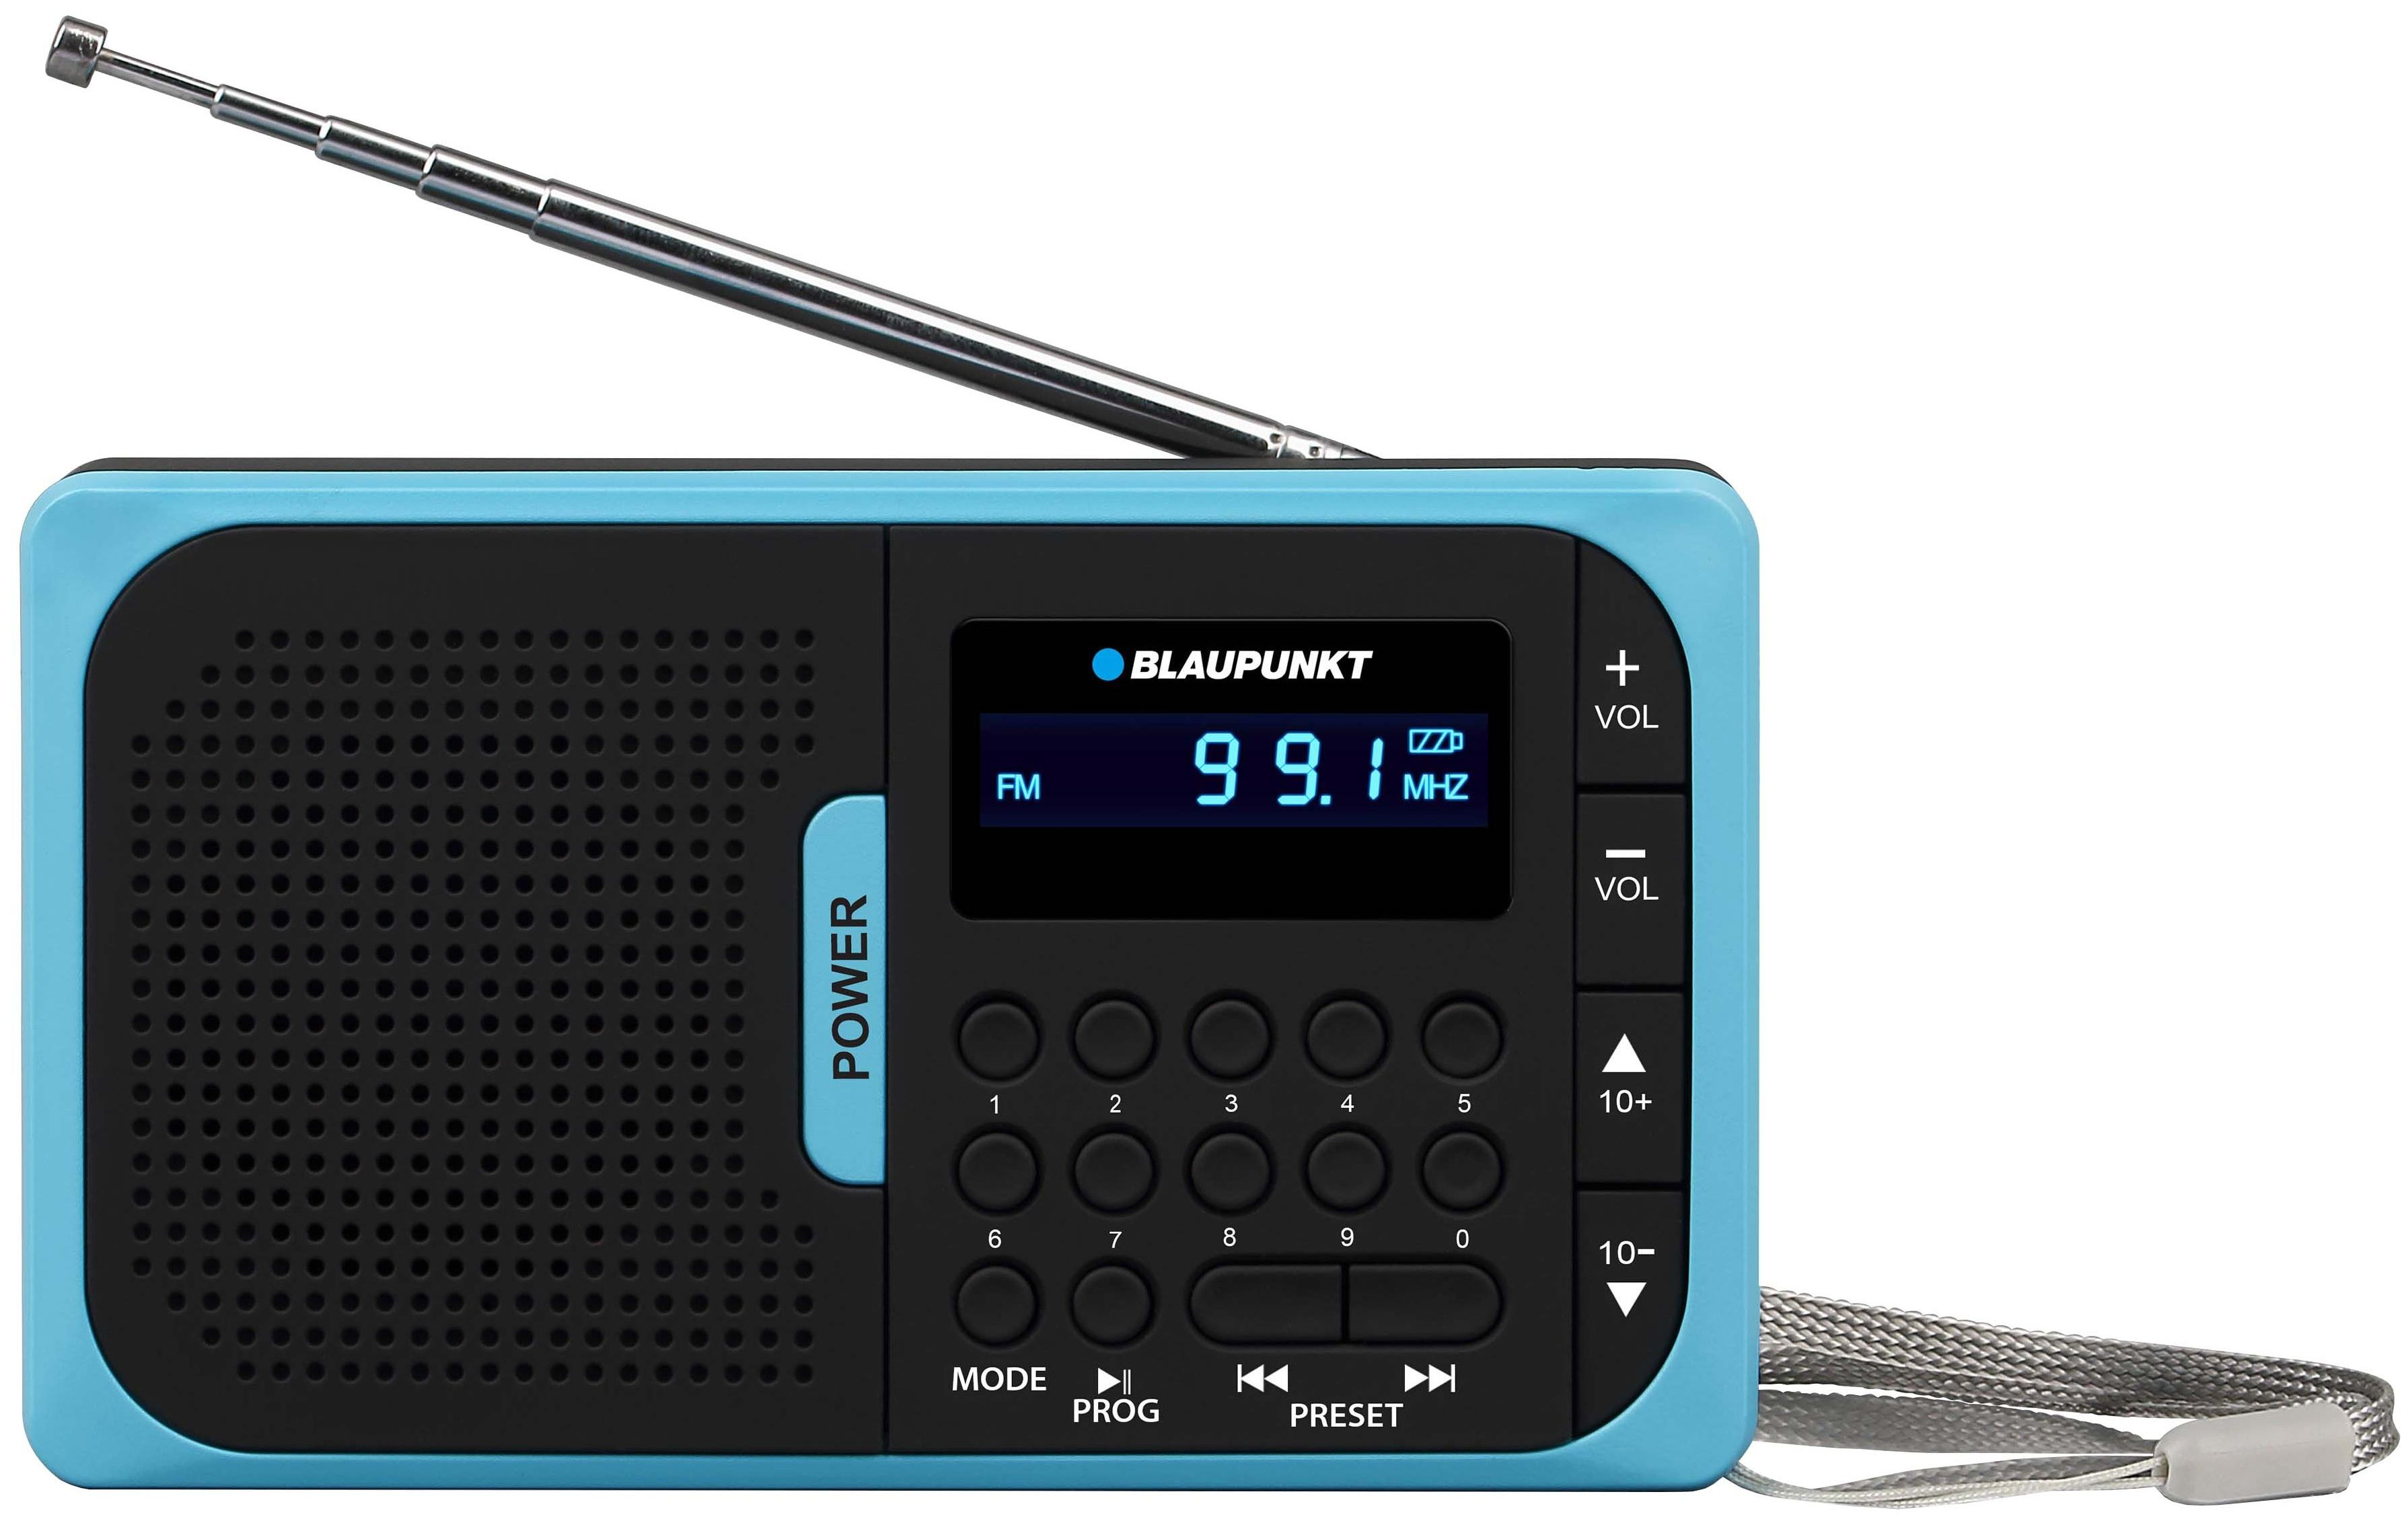 Blaupunkt Pr5bl Analog 1w Blackblue Radio Receiver Stereo Coder Multiplexer Pocket Pll Am Fm Usb Microsd With Battery Blue